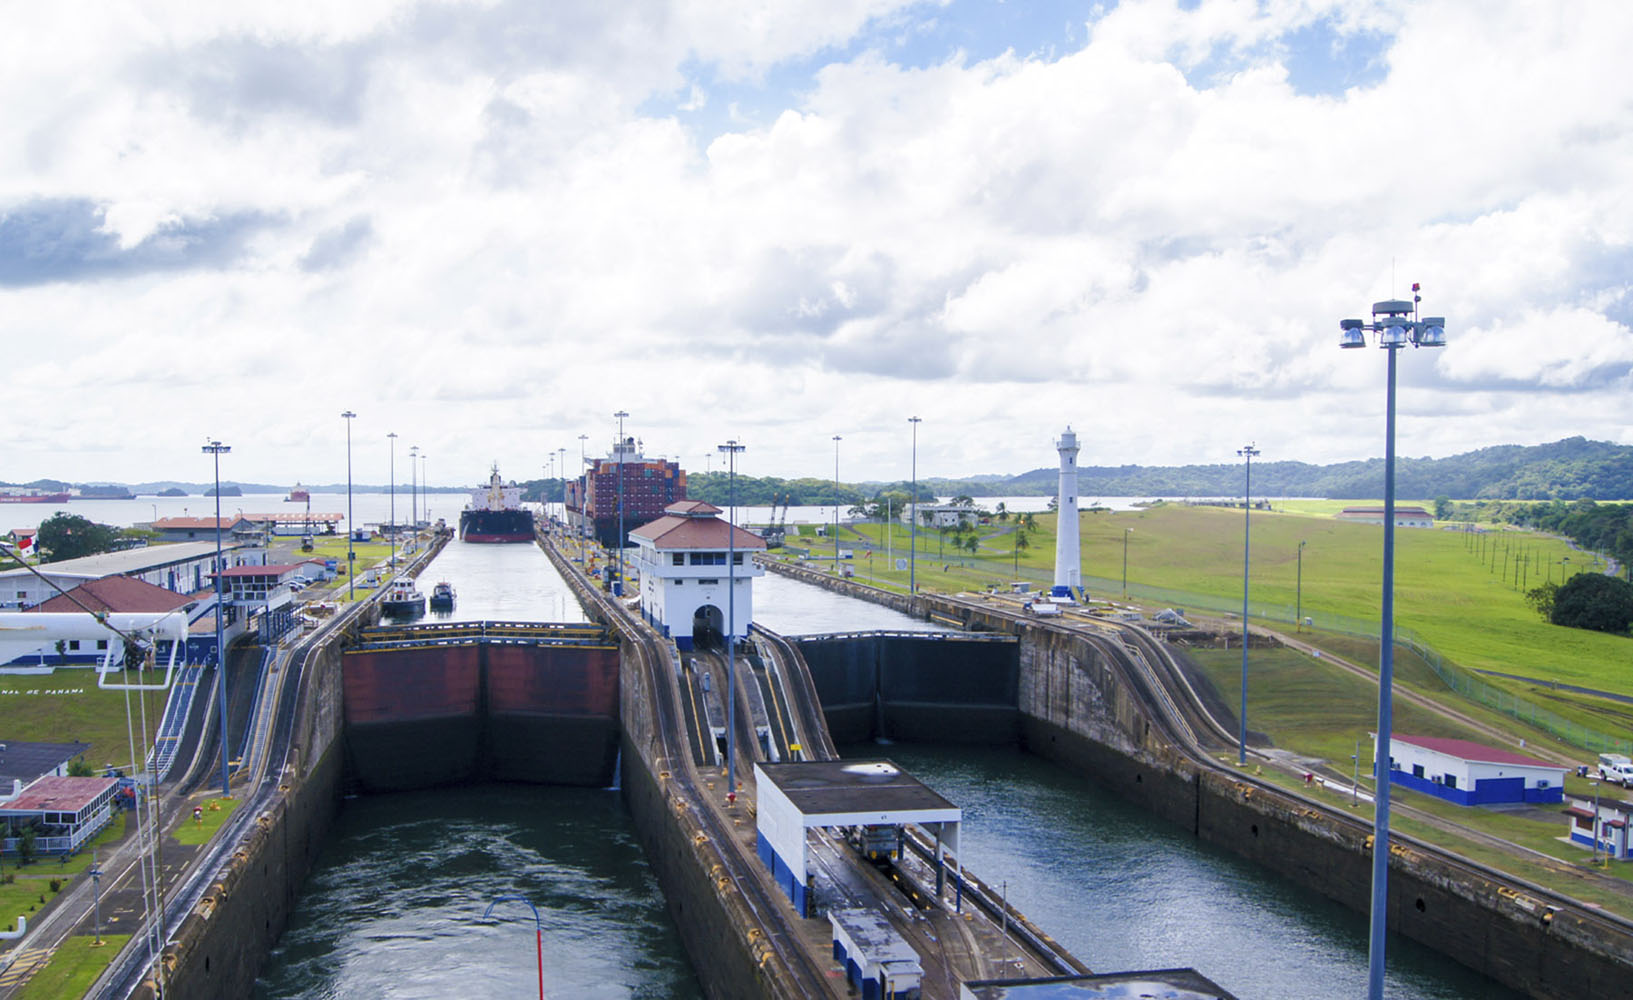 Traversing the Panama Canal is a bucket list experience.